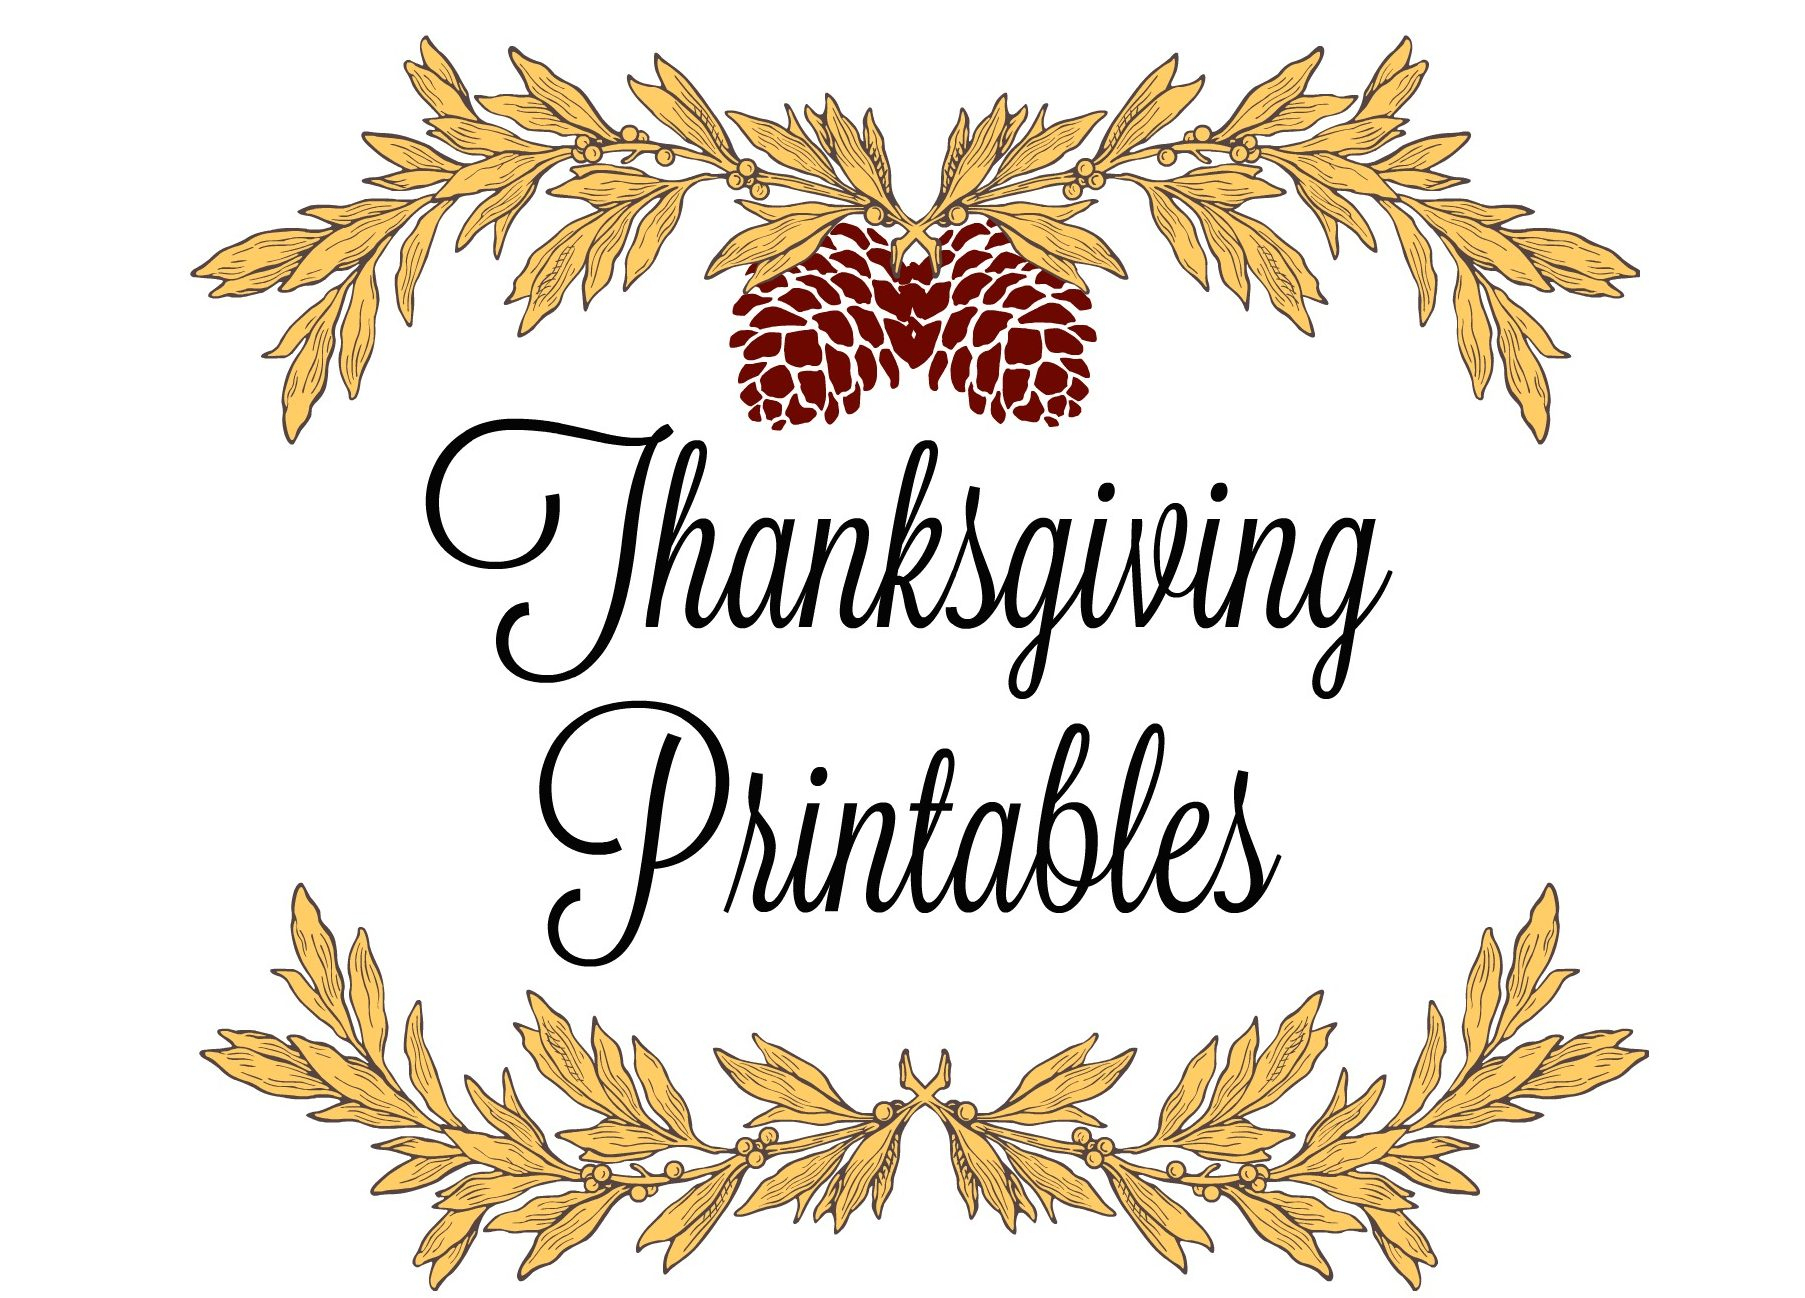 Printable Thanksgiving Place Cards & Menus - Free Printable Thanksgiving Place Cards